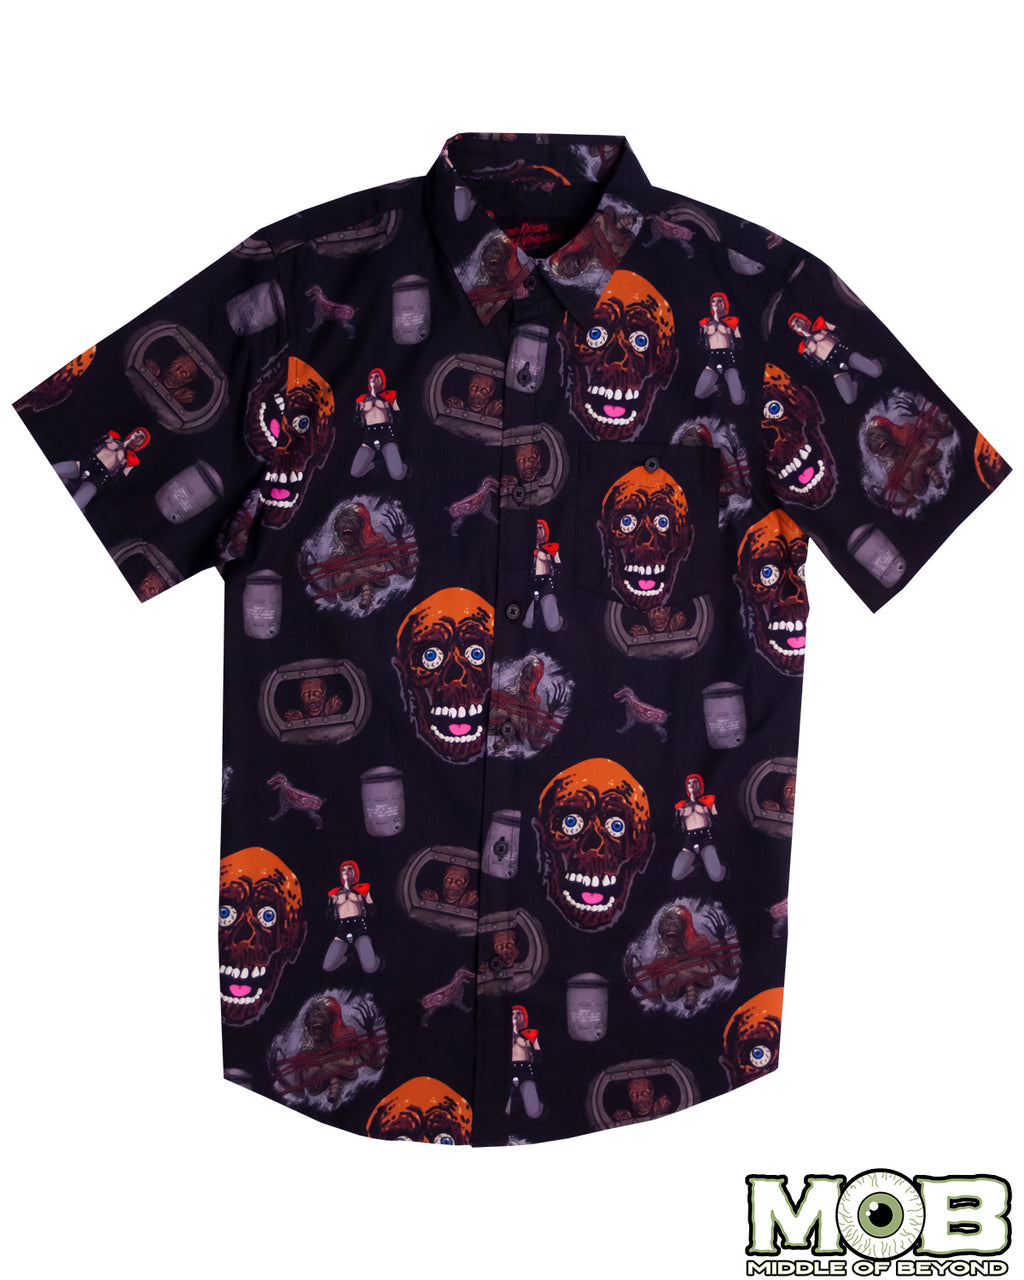 Return of the Living Dead Short Sleeve Button-Up Shirt Version 1